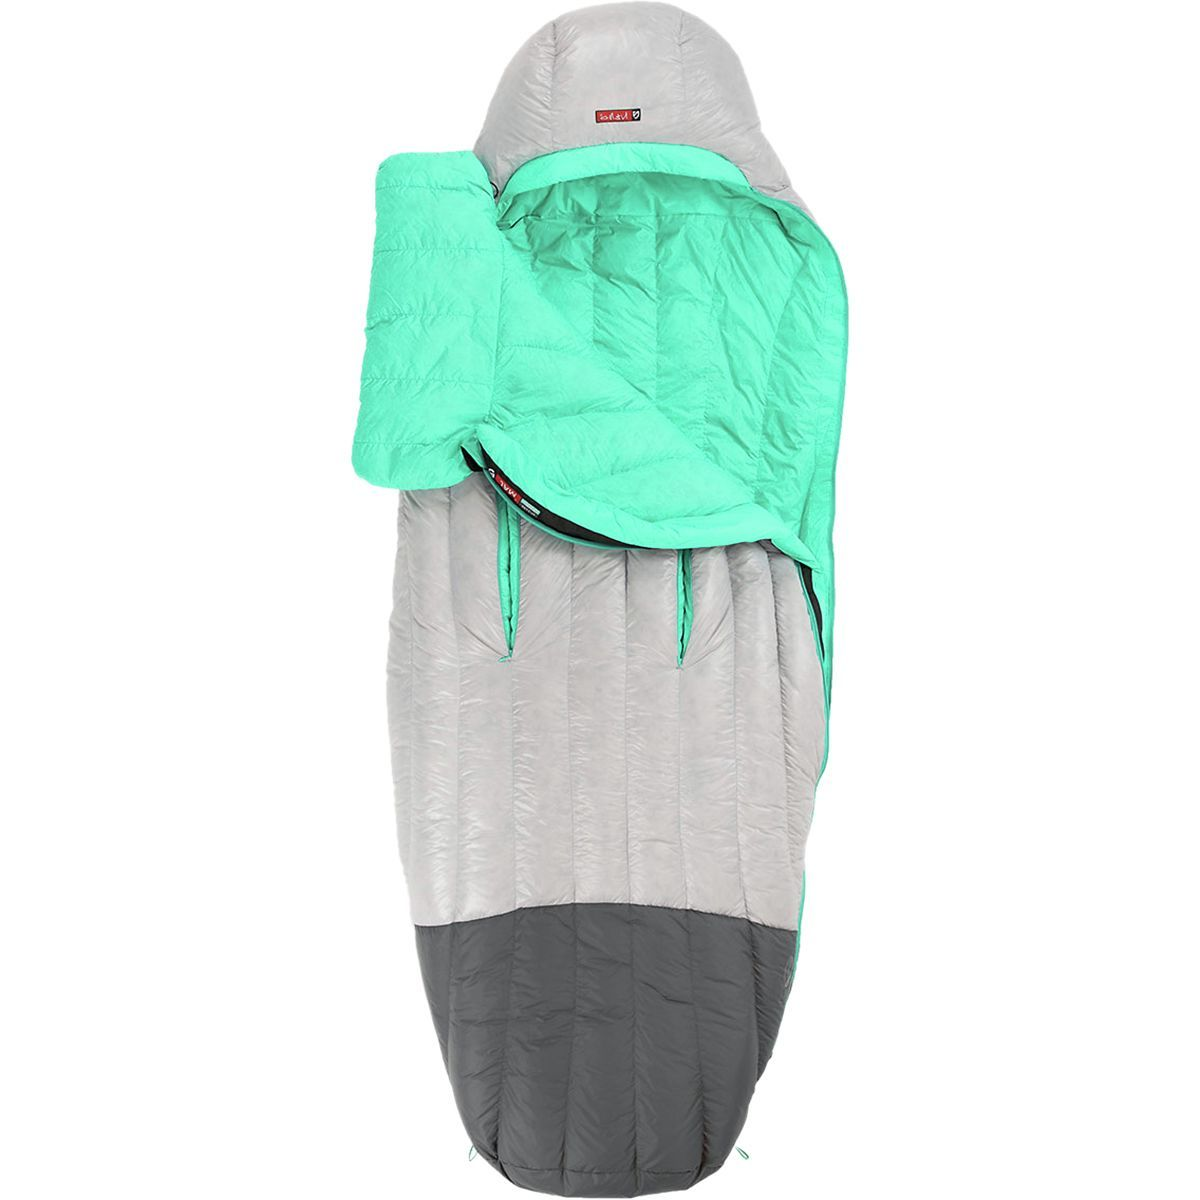 NEMO Equipment Inc. Jam 30 Sleeping Bag: 30 Degree - Women's